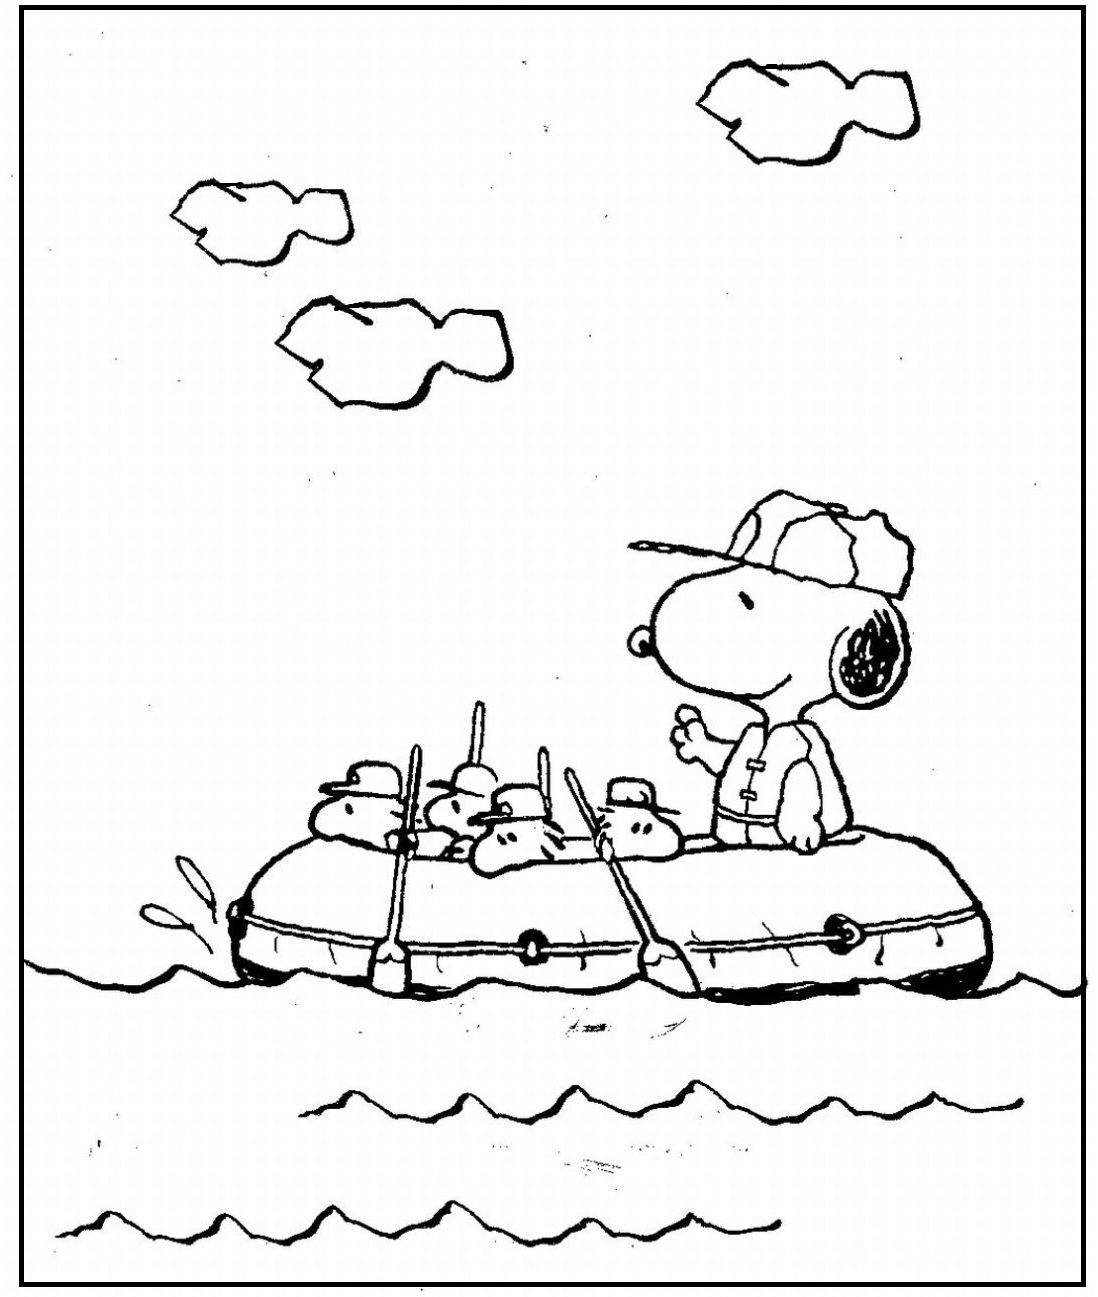 Snoopy And Woodstock Rafting coloring picture for kids | Snoopy ...